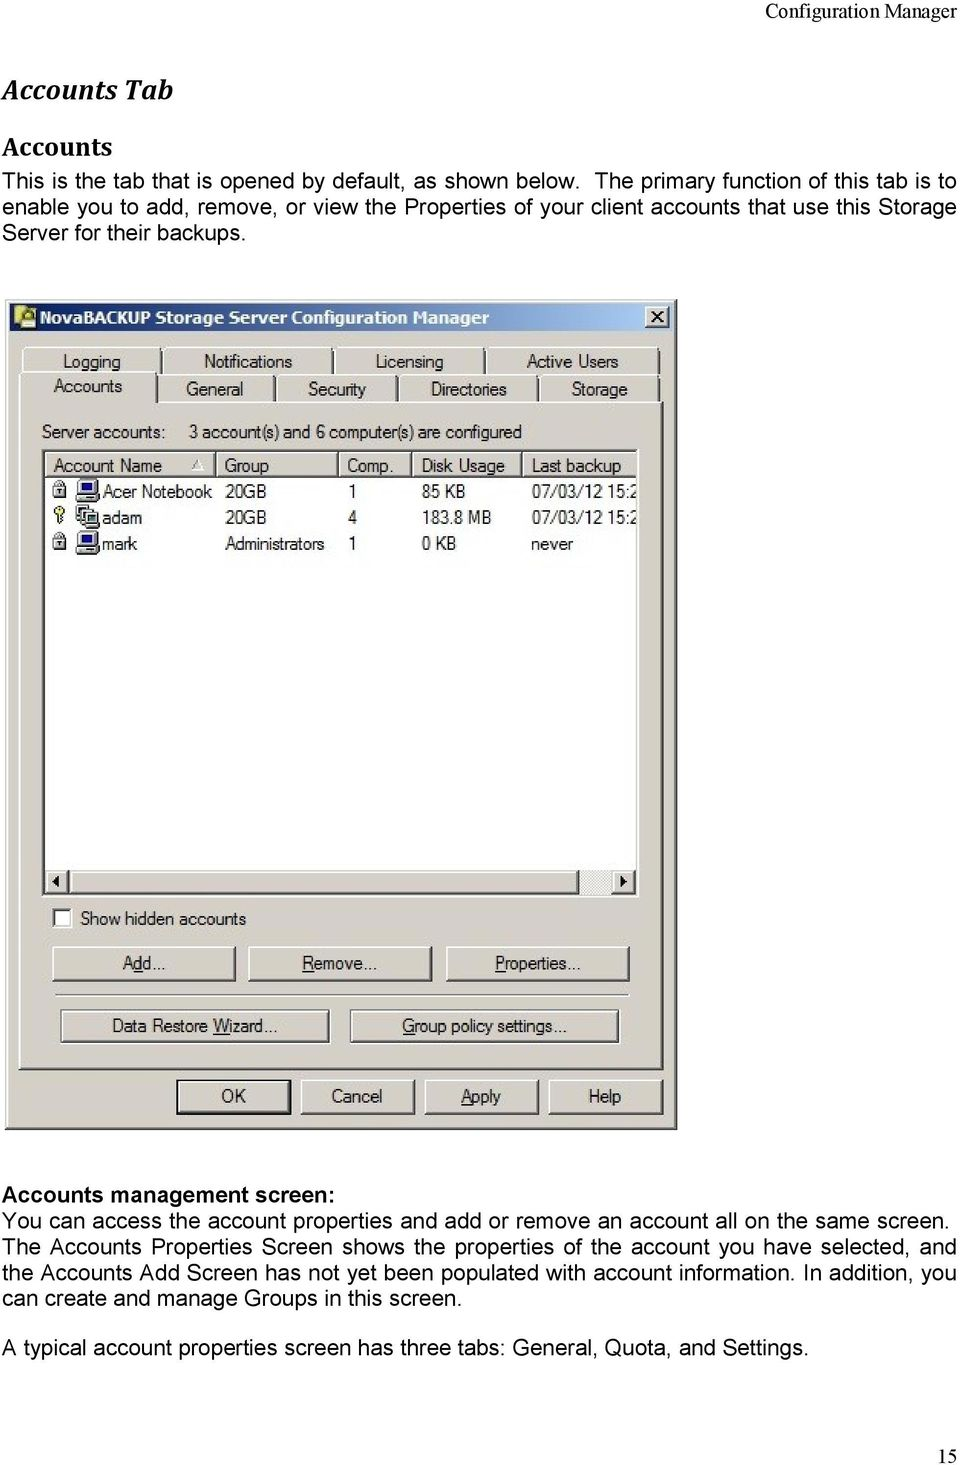 Accounts management screen: You can access the account properties and add or remove an account all on the same screen.